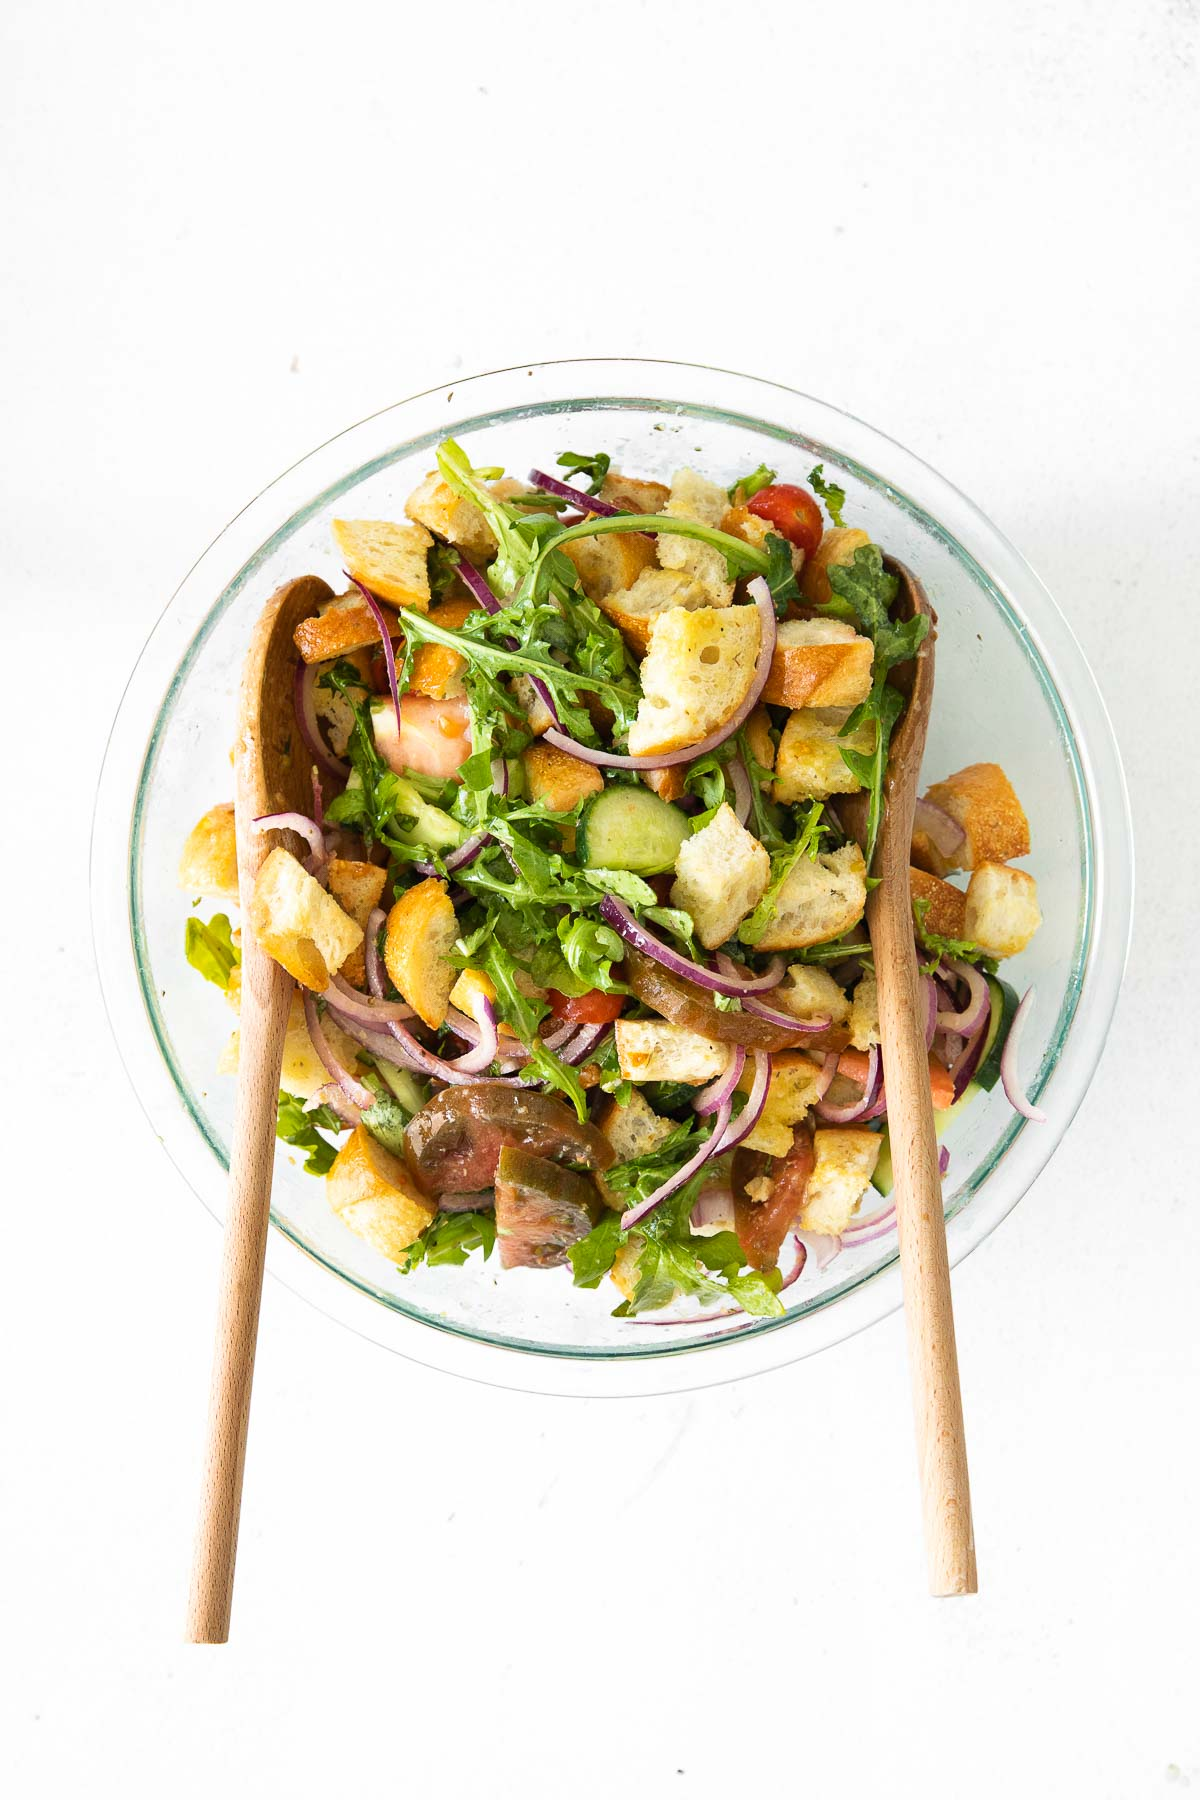 panzanella salad with bread cubes in a glass bowl